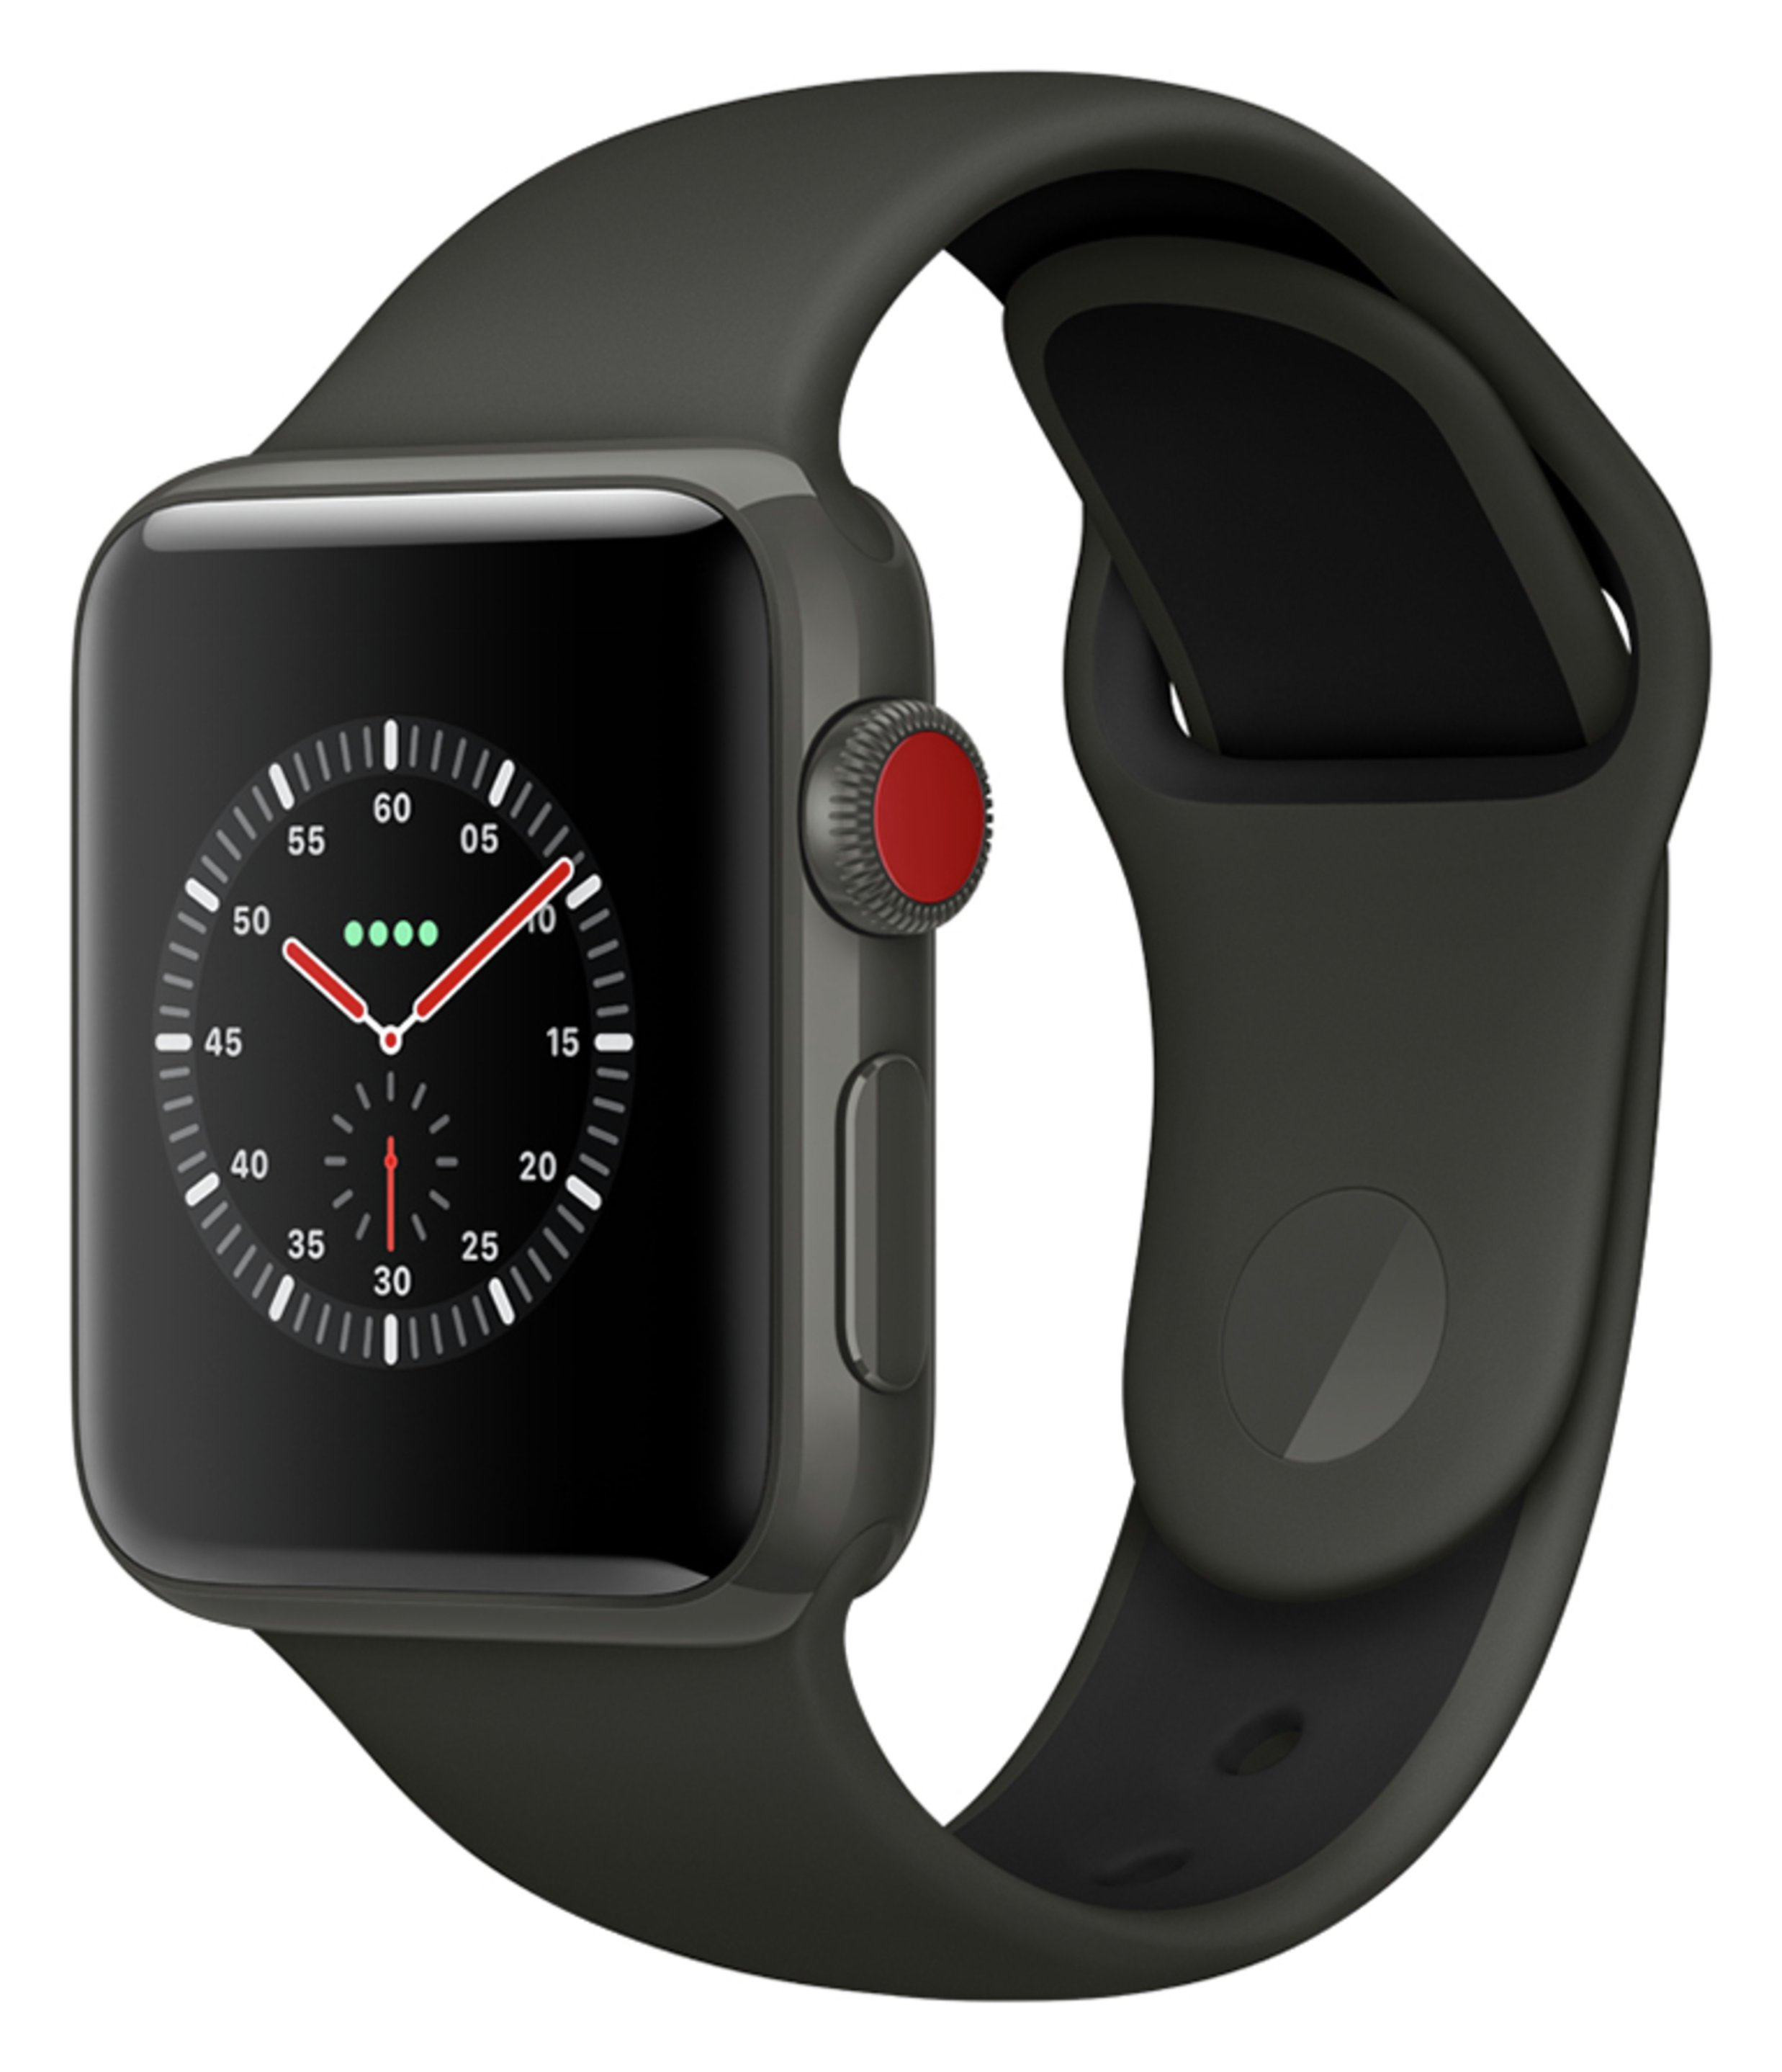 Apple Apple Watch S3 Edition Cellular 38mm - Grey Ceramic